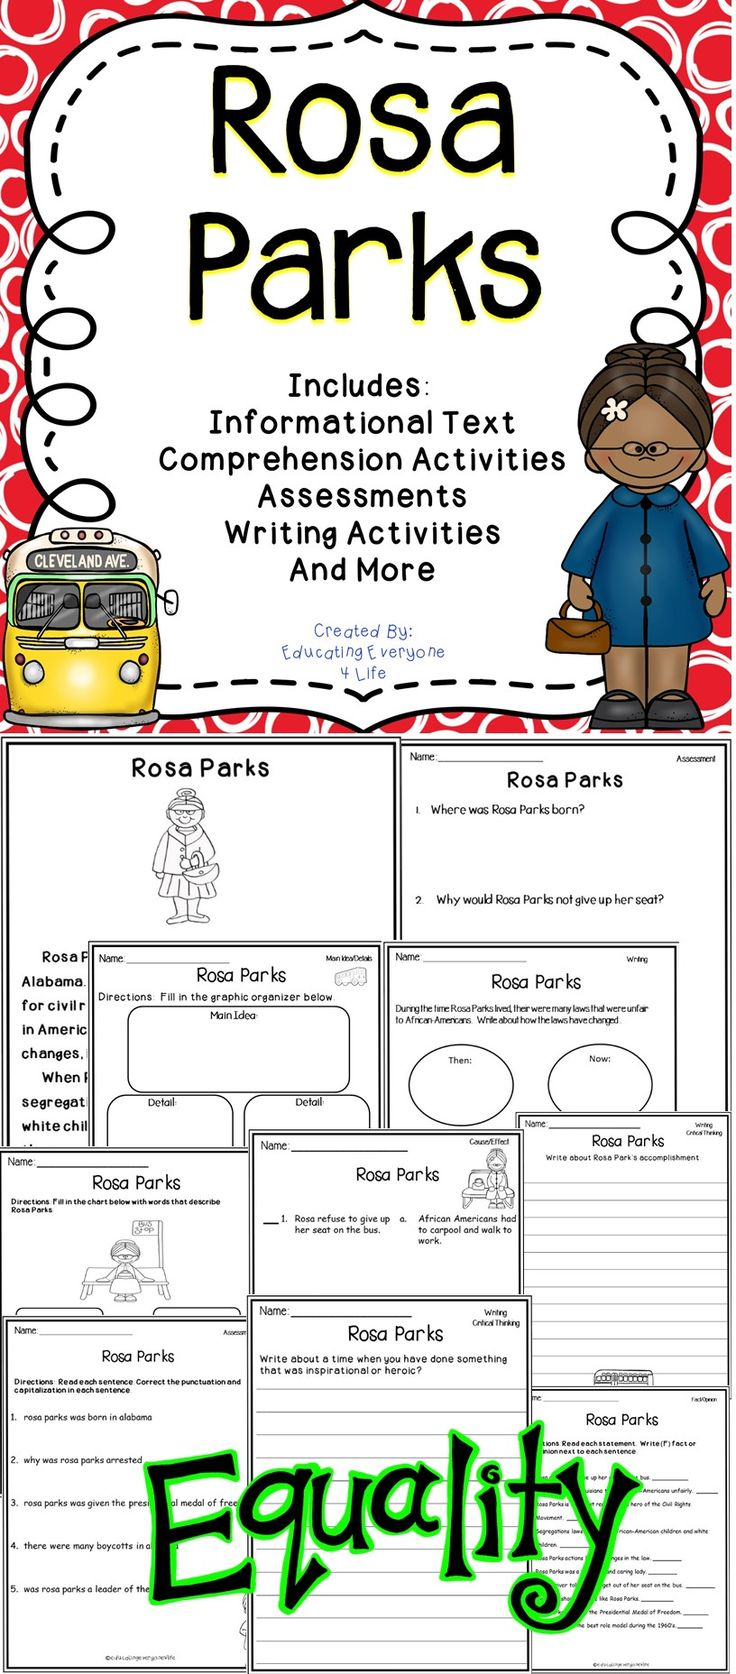 17 best ideas about rosa parks biography rosa parks rosa parks classroom activities